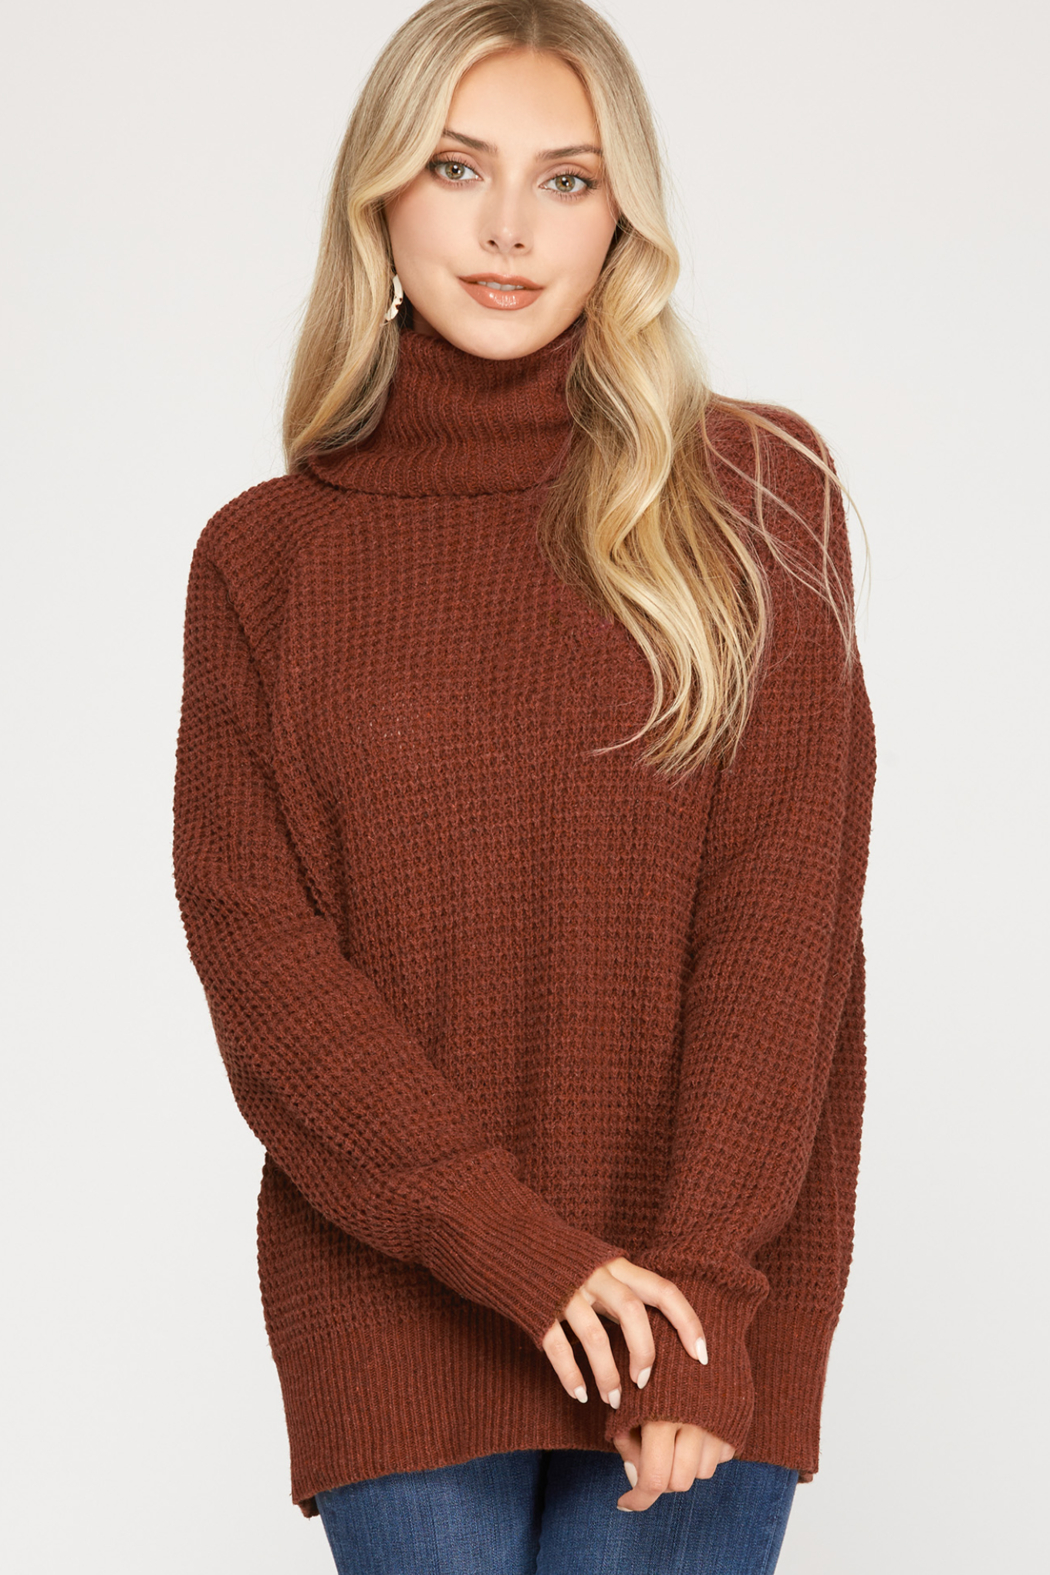 She and Sky Long Sleeve Turtle Neck Knit Sweater Top w/ Split back detail - Main Image